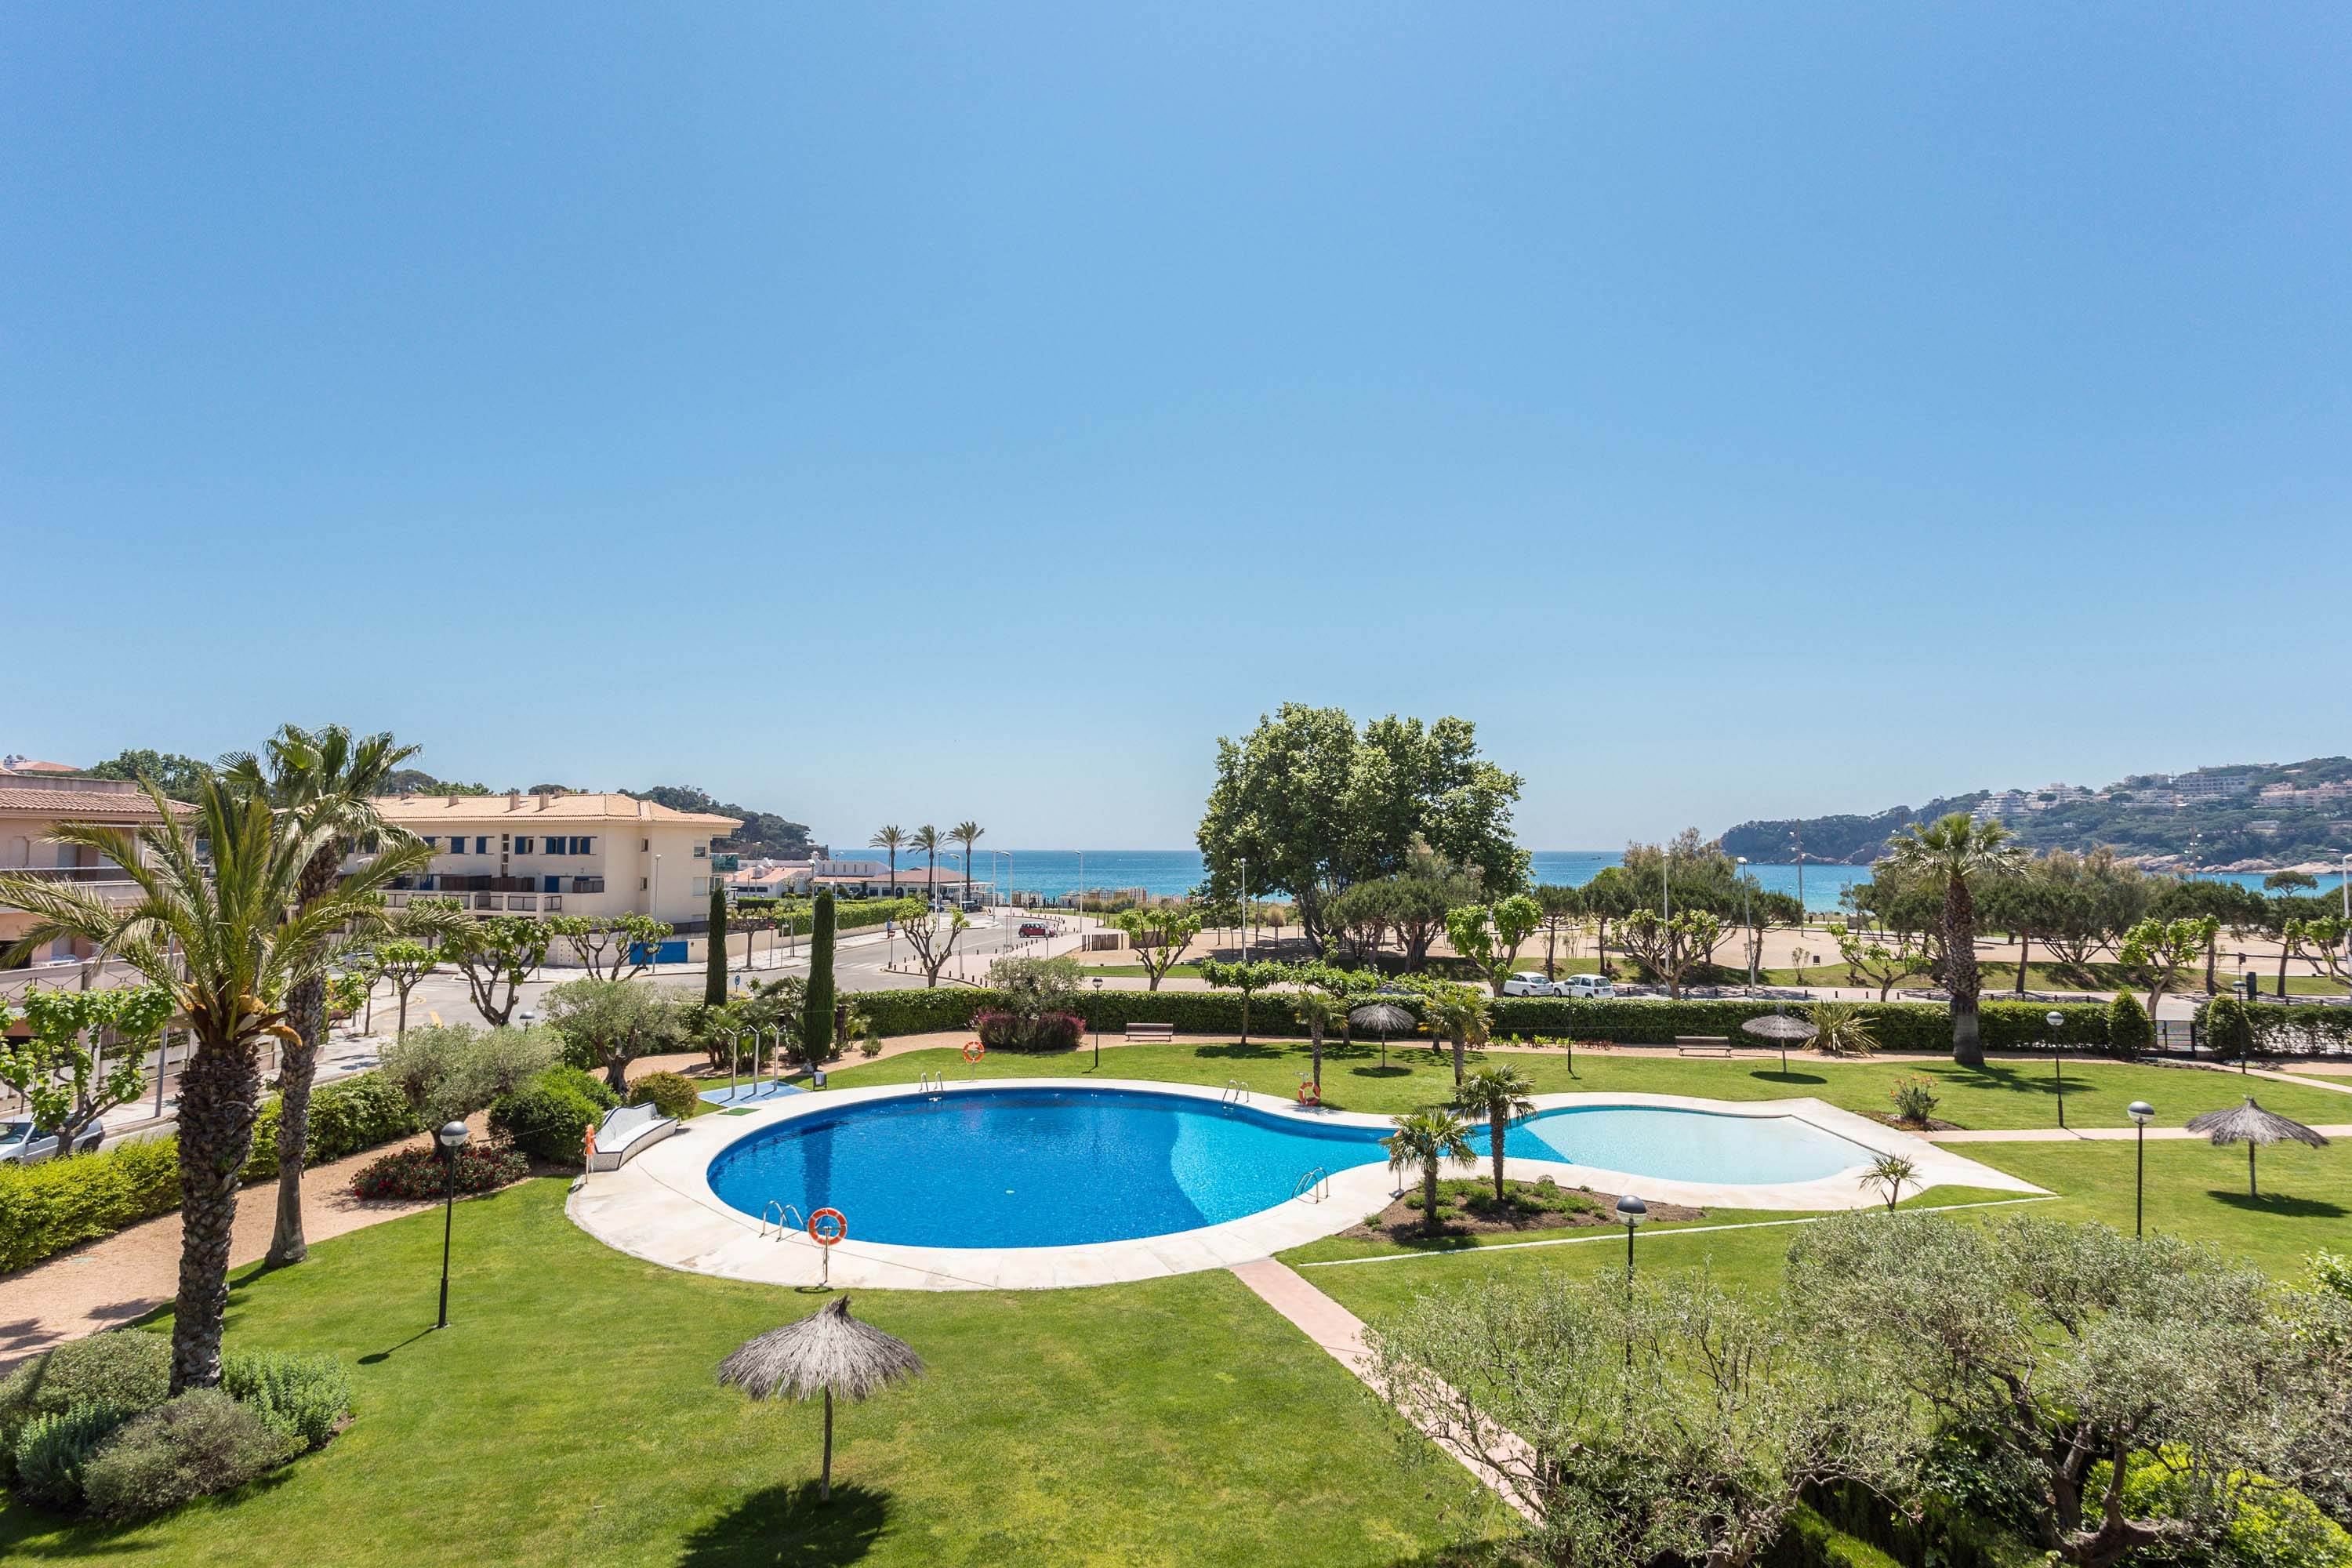 Apartment for Sale at First line apartment in S'Agaro S'Agaro, Costa Brava 17248 Spain